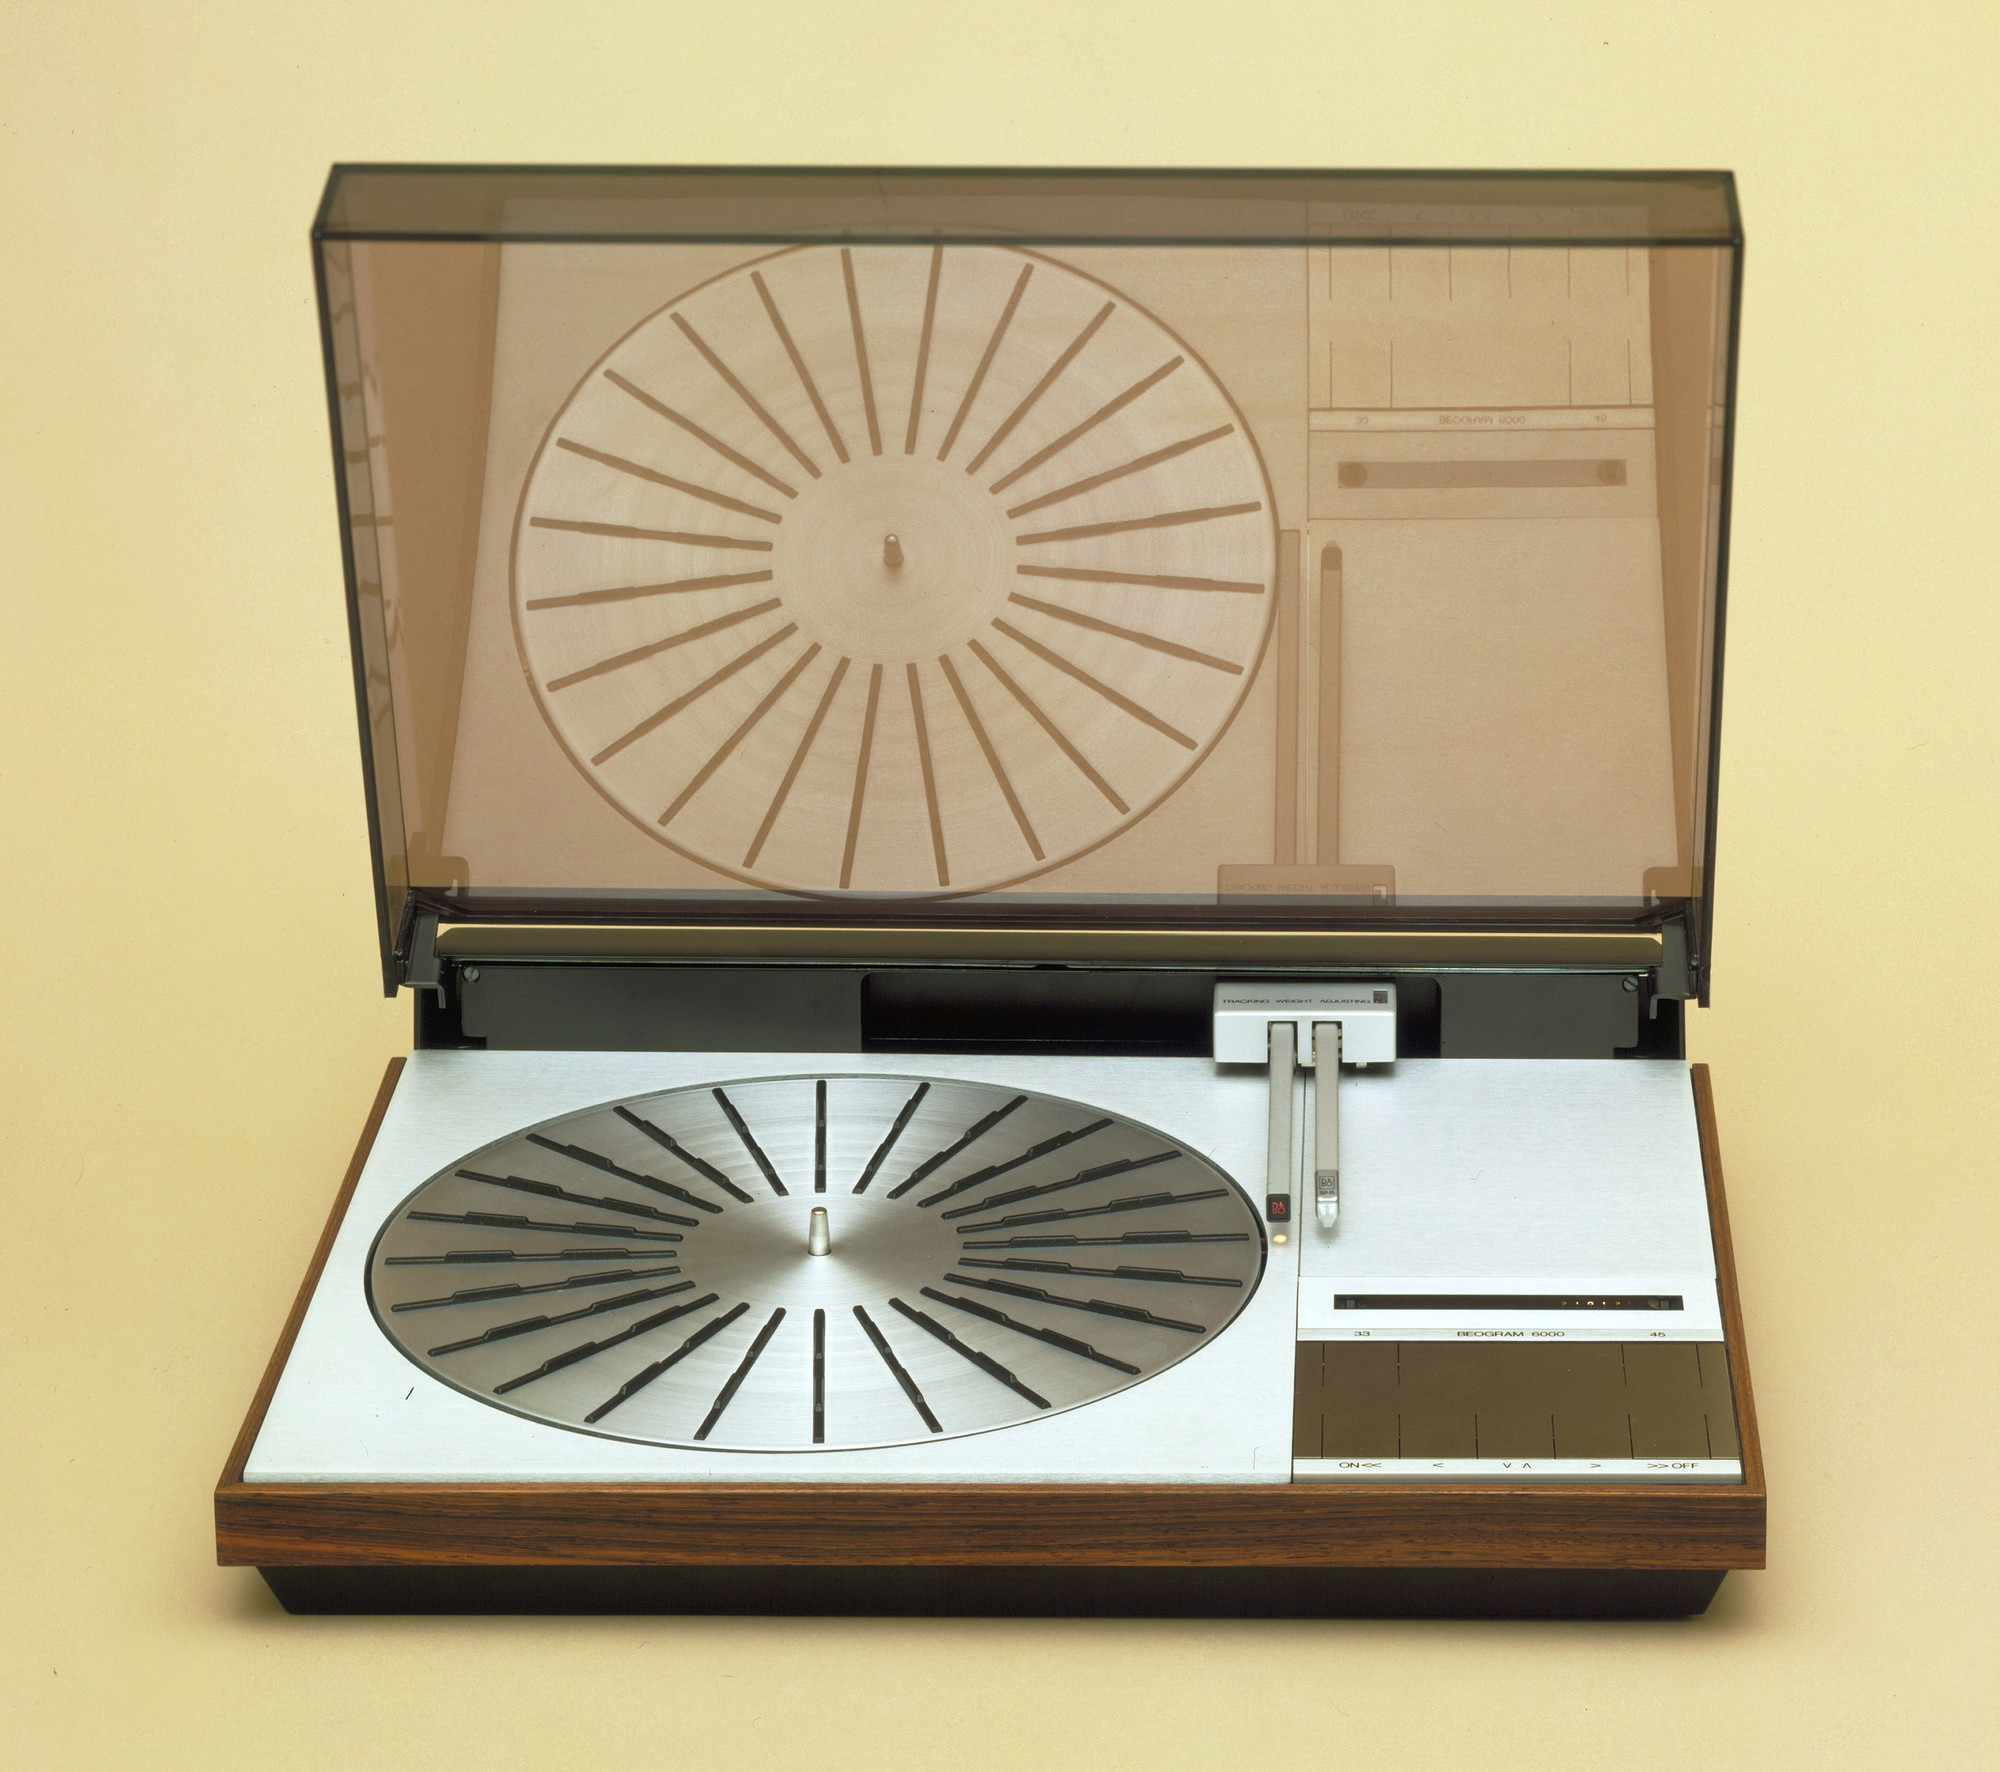 Jacob Jensen. Beogram 6000 Turntable. 1974